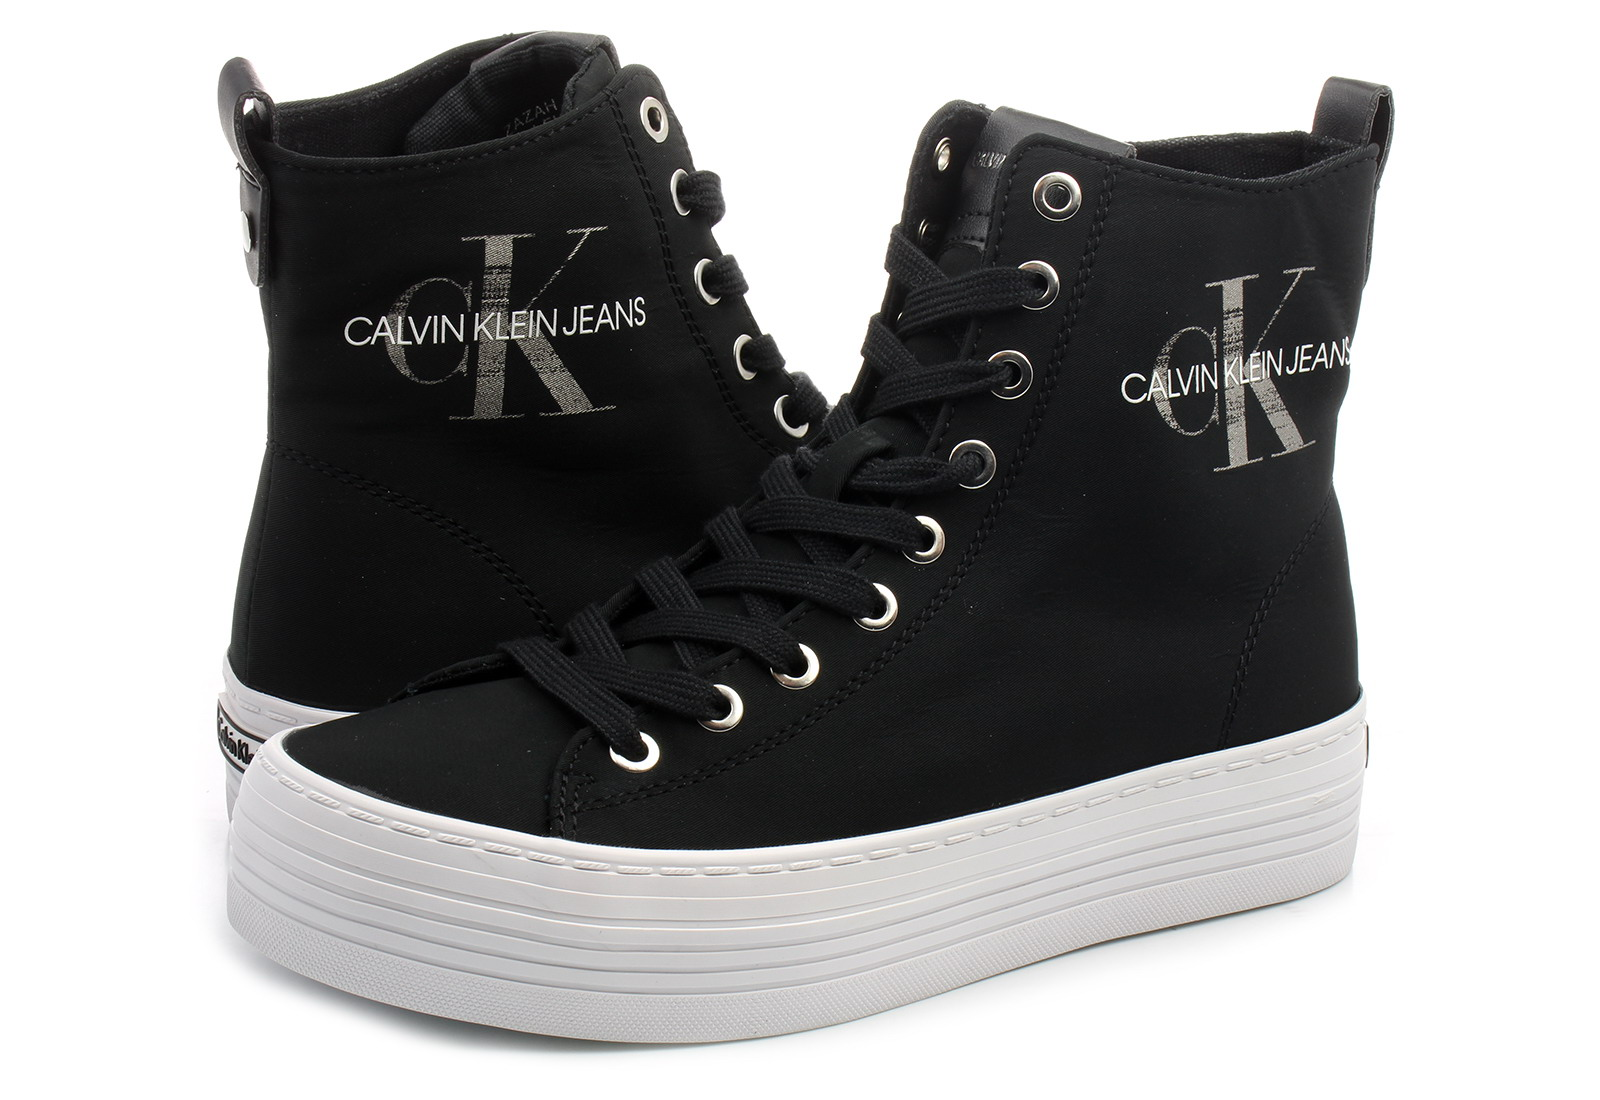 00d4785137 Calvin Klein Jeans Shoes - Zazah - RE9794-BLK - Online shop for ...